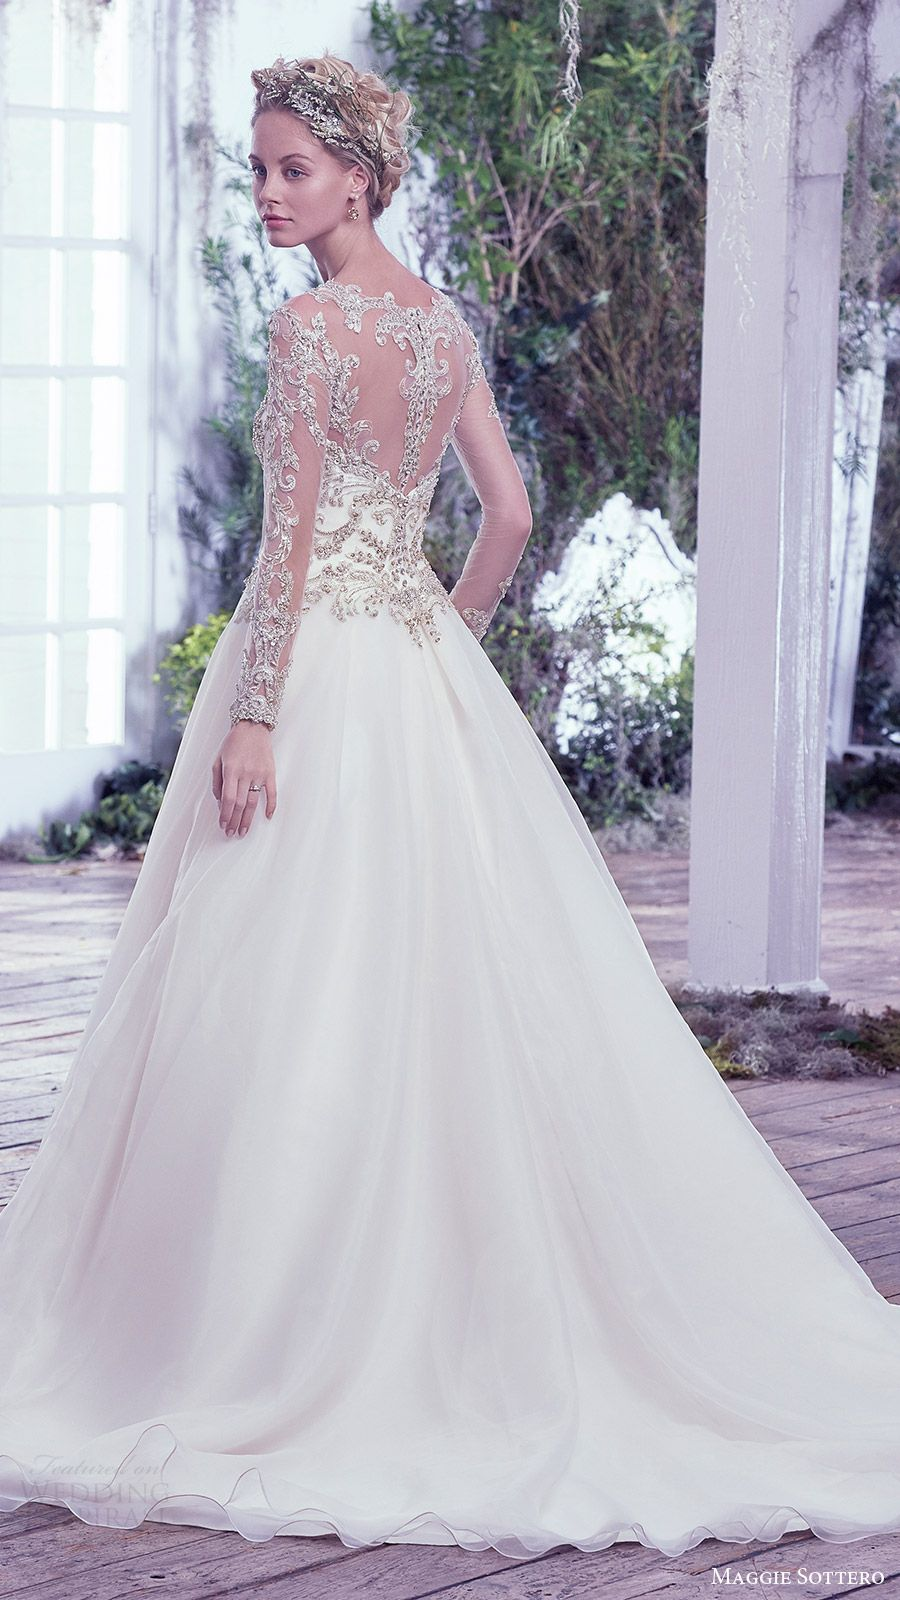 Maggie Sottero Bridal Fall 2016 Illusion Long Sleeves Sweetheart Jewel Neck Ball Gown Wedding Dress